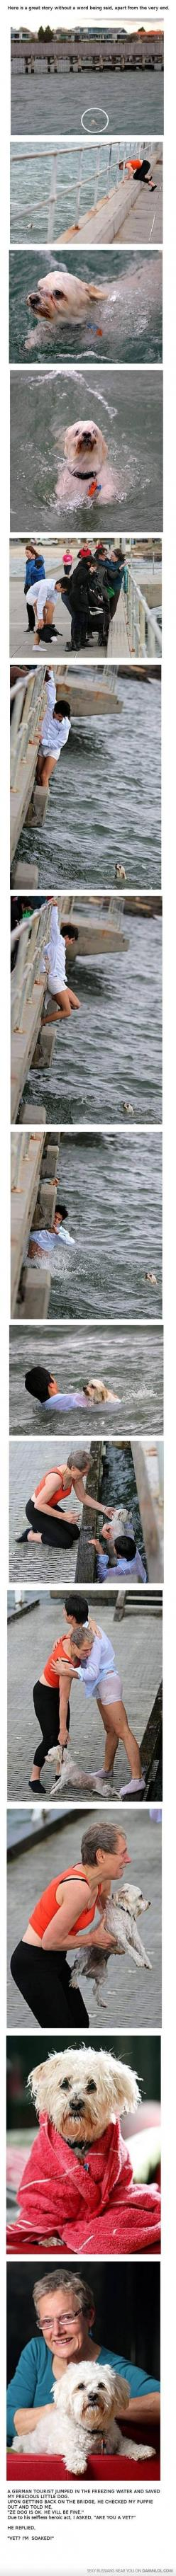 incredible!: Saves Dog, Amazing Stories, Sweet, Hero, Humanity Restored, German, Faith Restored, Faith In Humanity, Acts Of Kindness